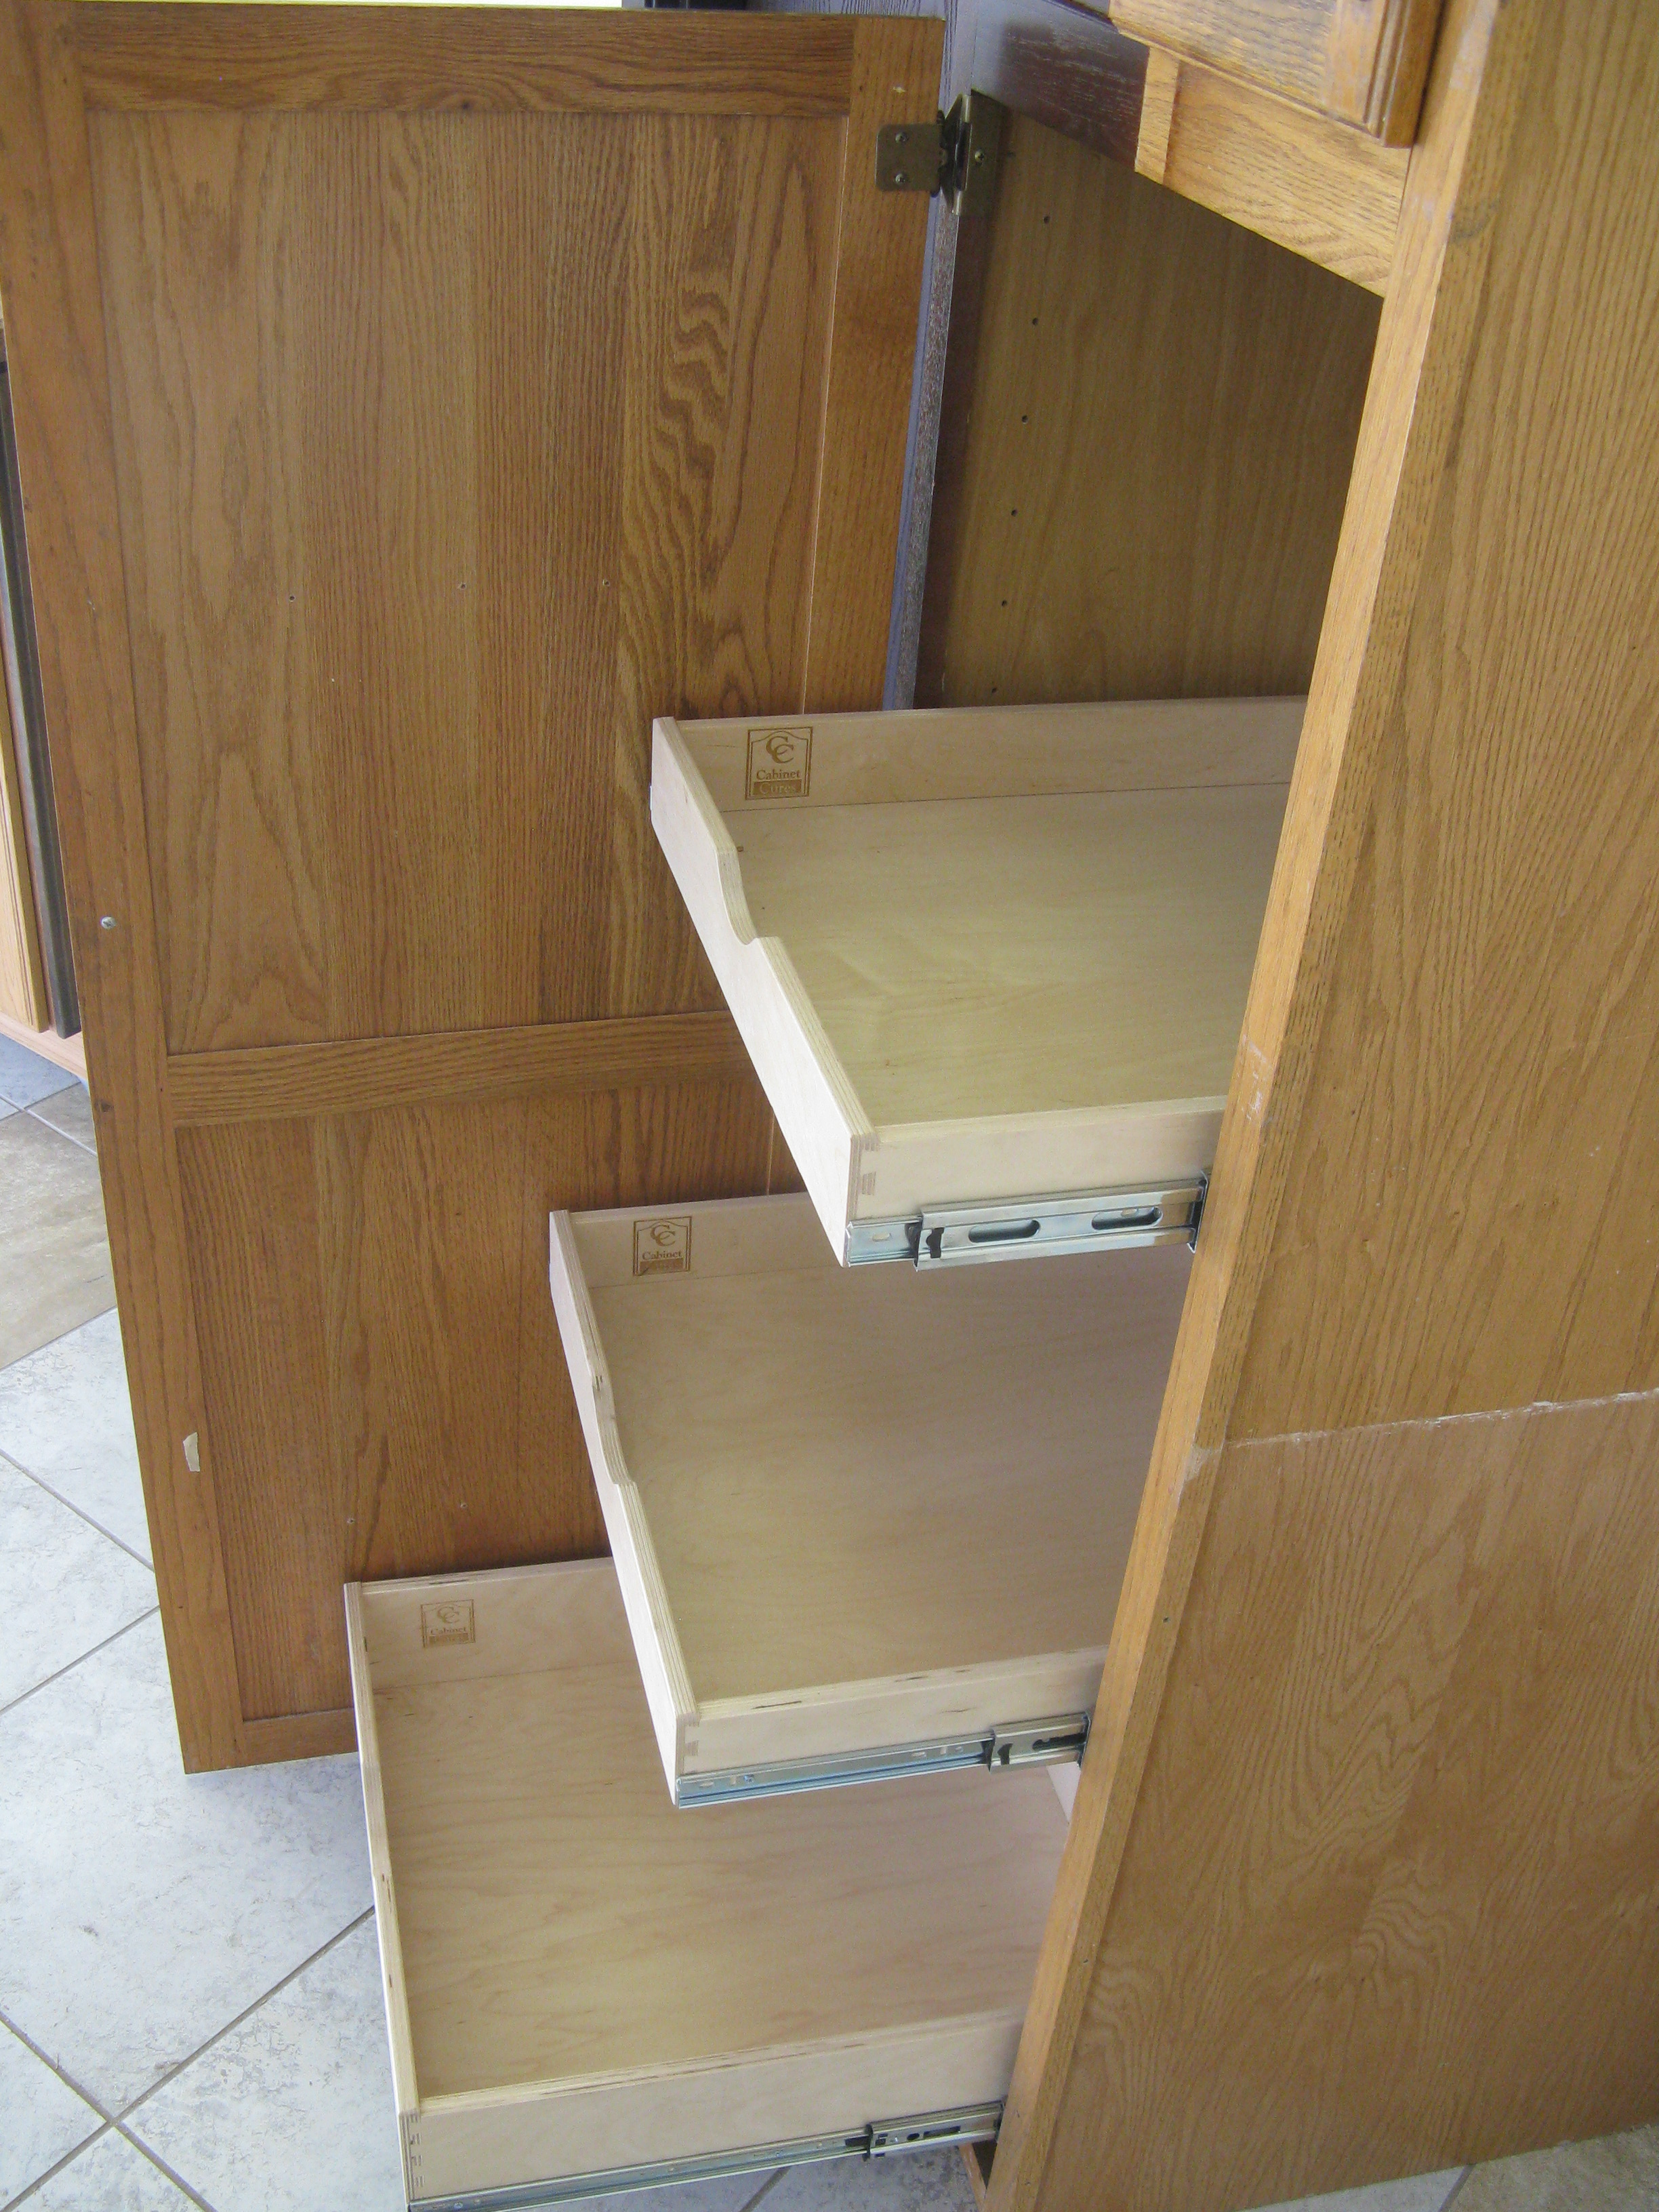 3 pull-out drawers portland cabinet cures